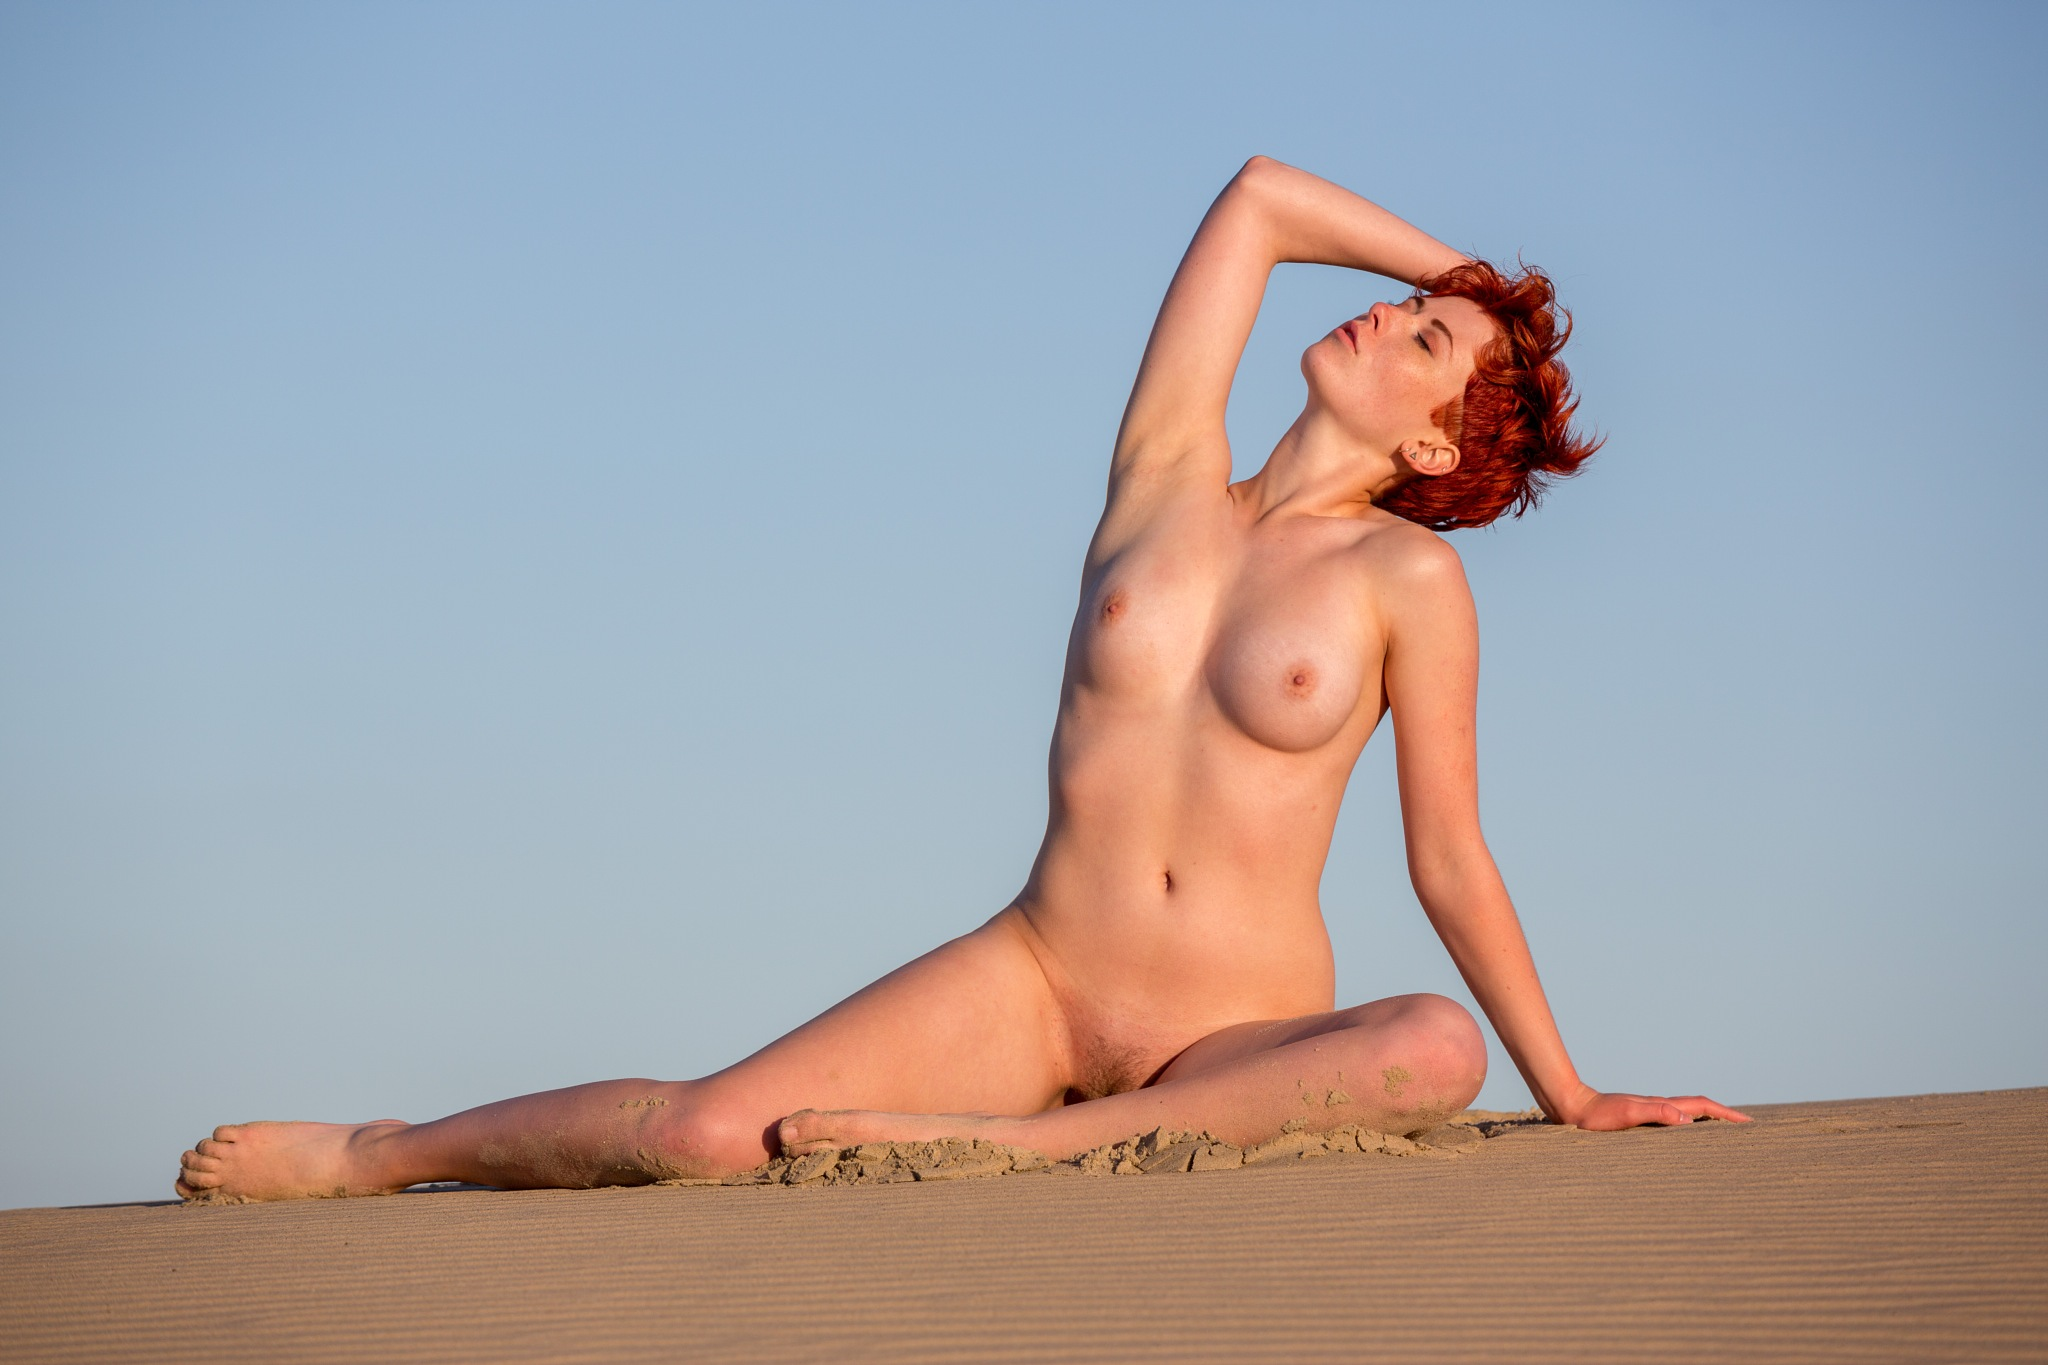 Red Hair by Michael Jaques Sell